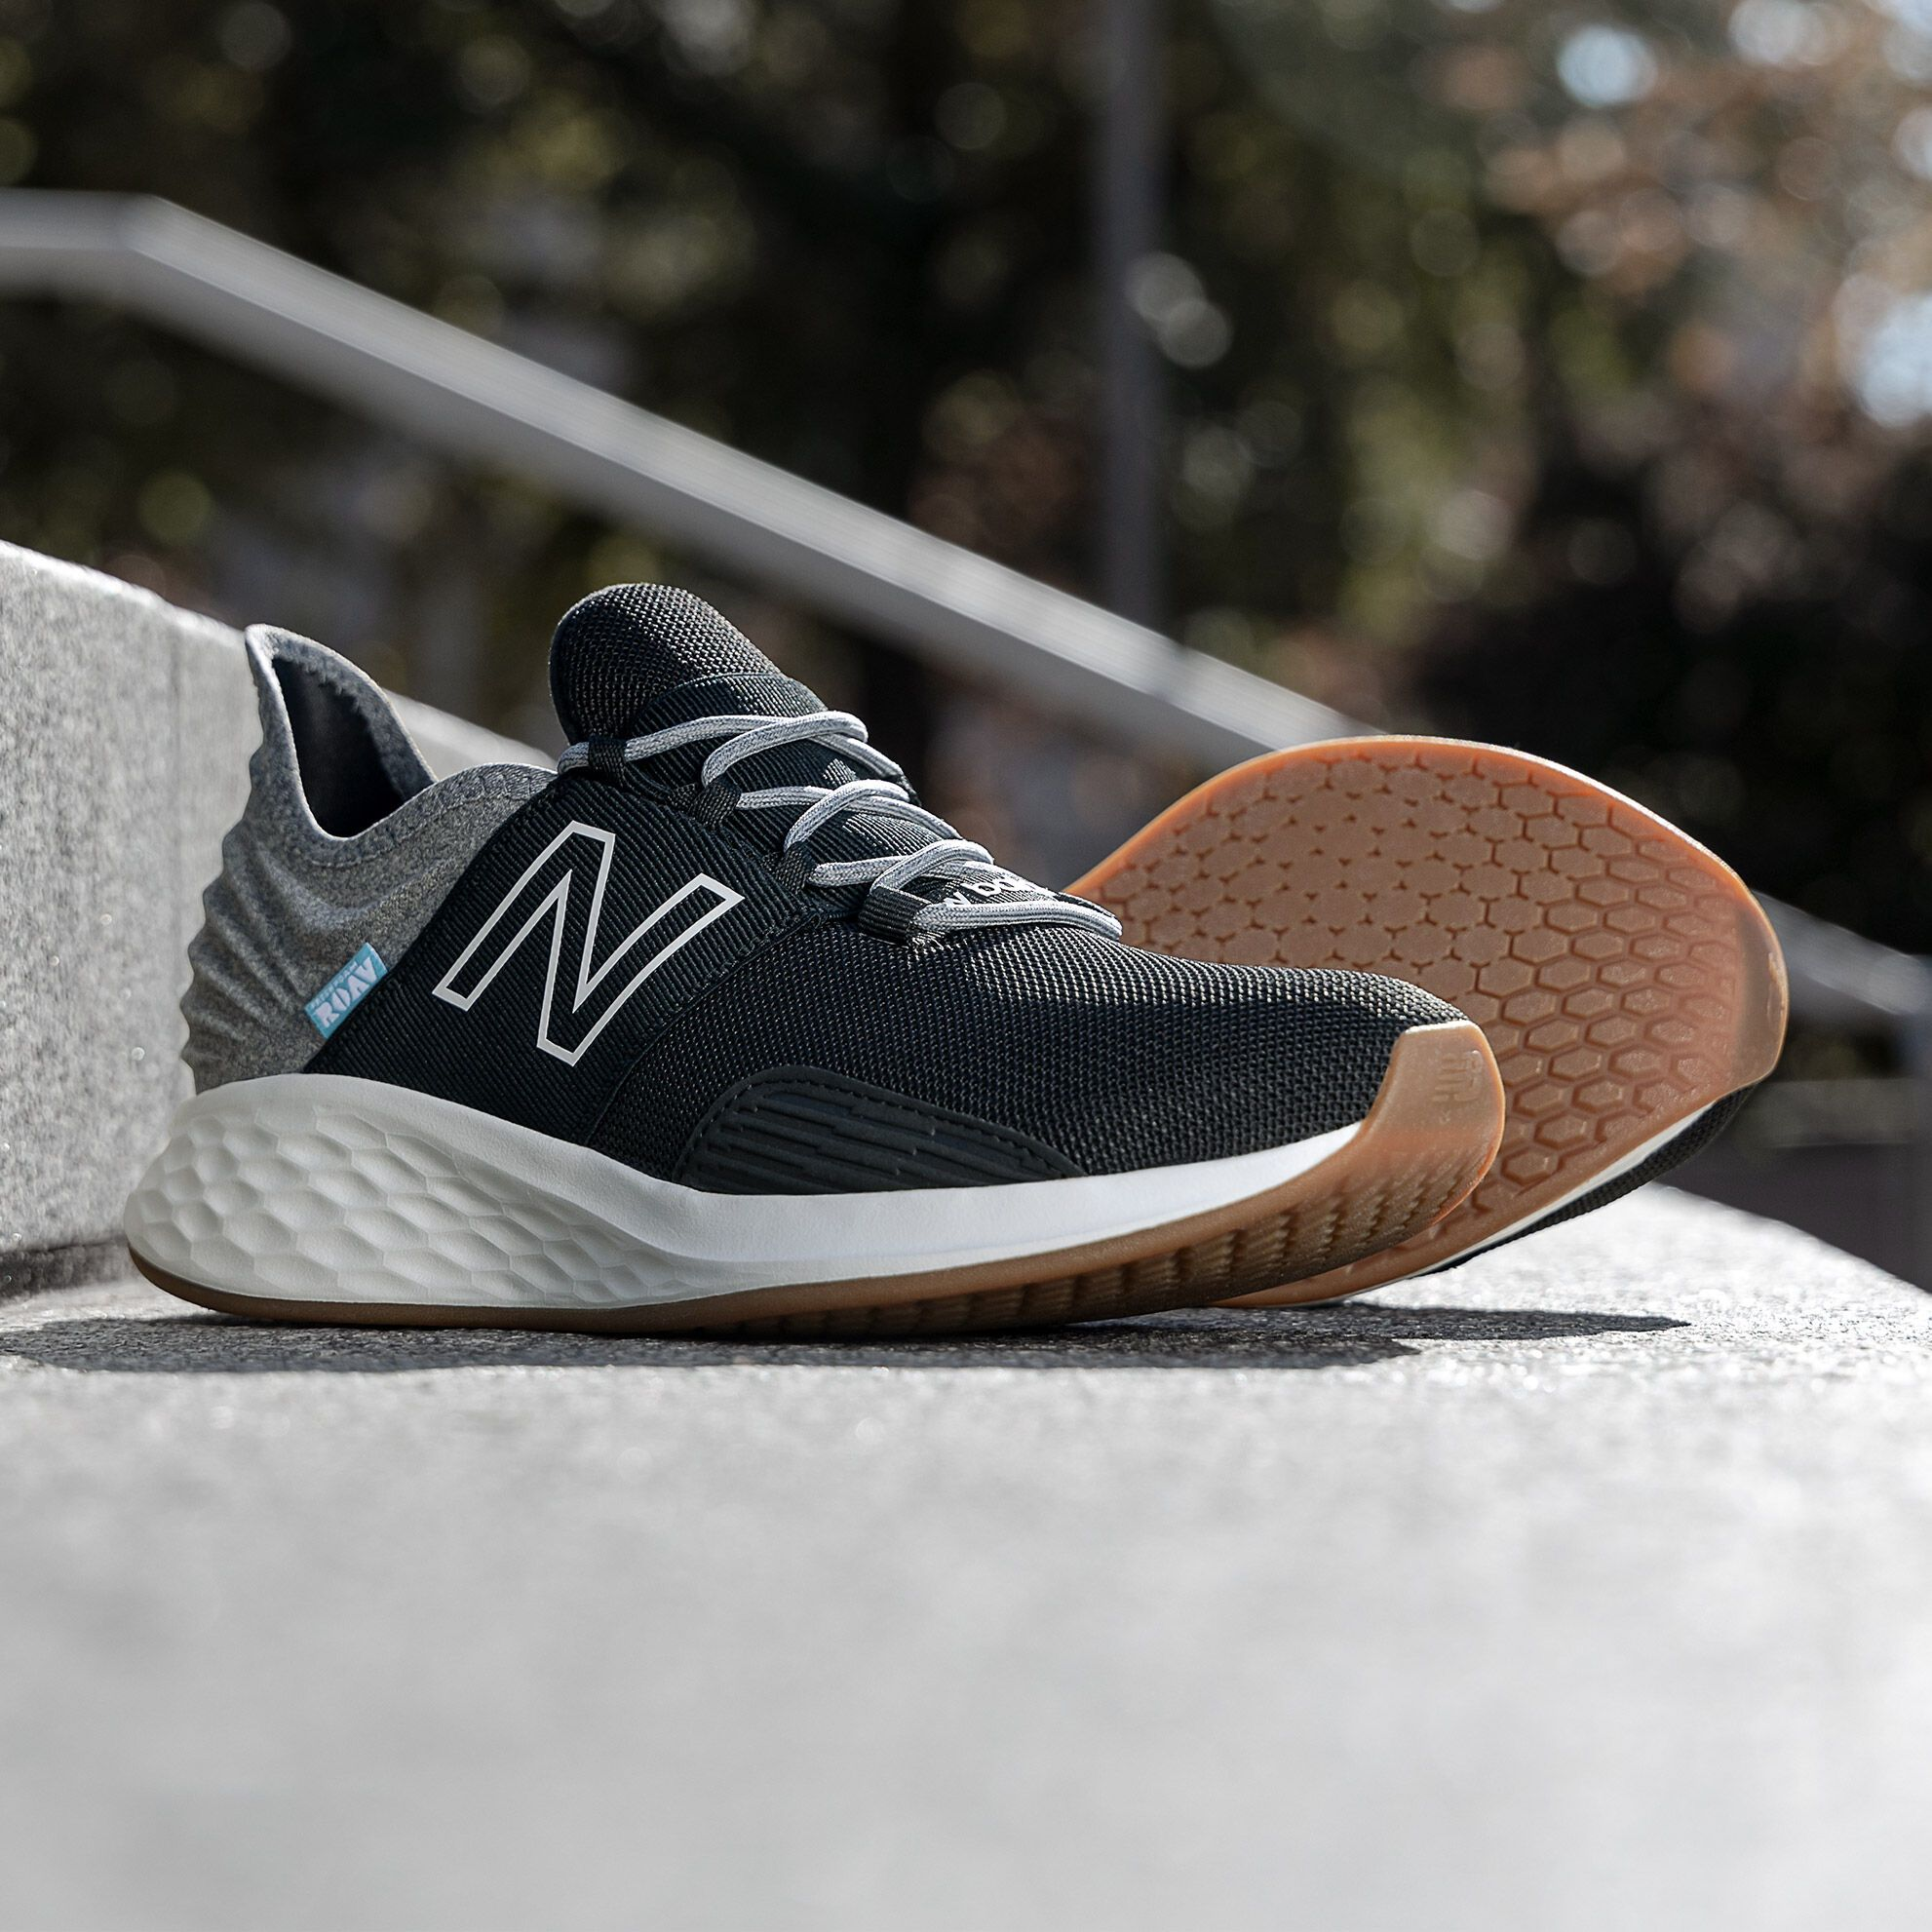 The Best Deals on New Balance Shoes